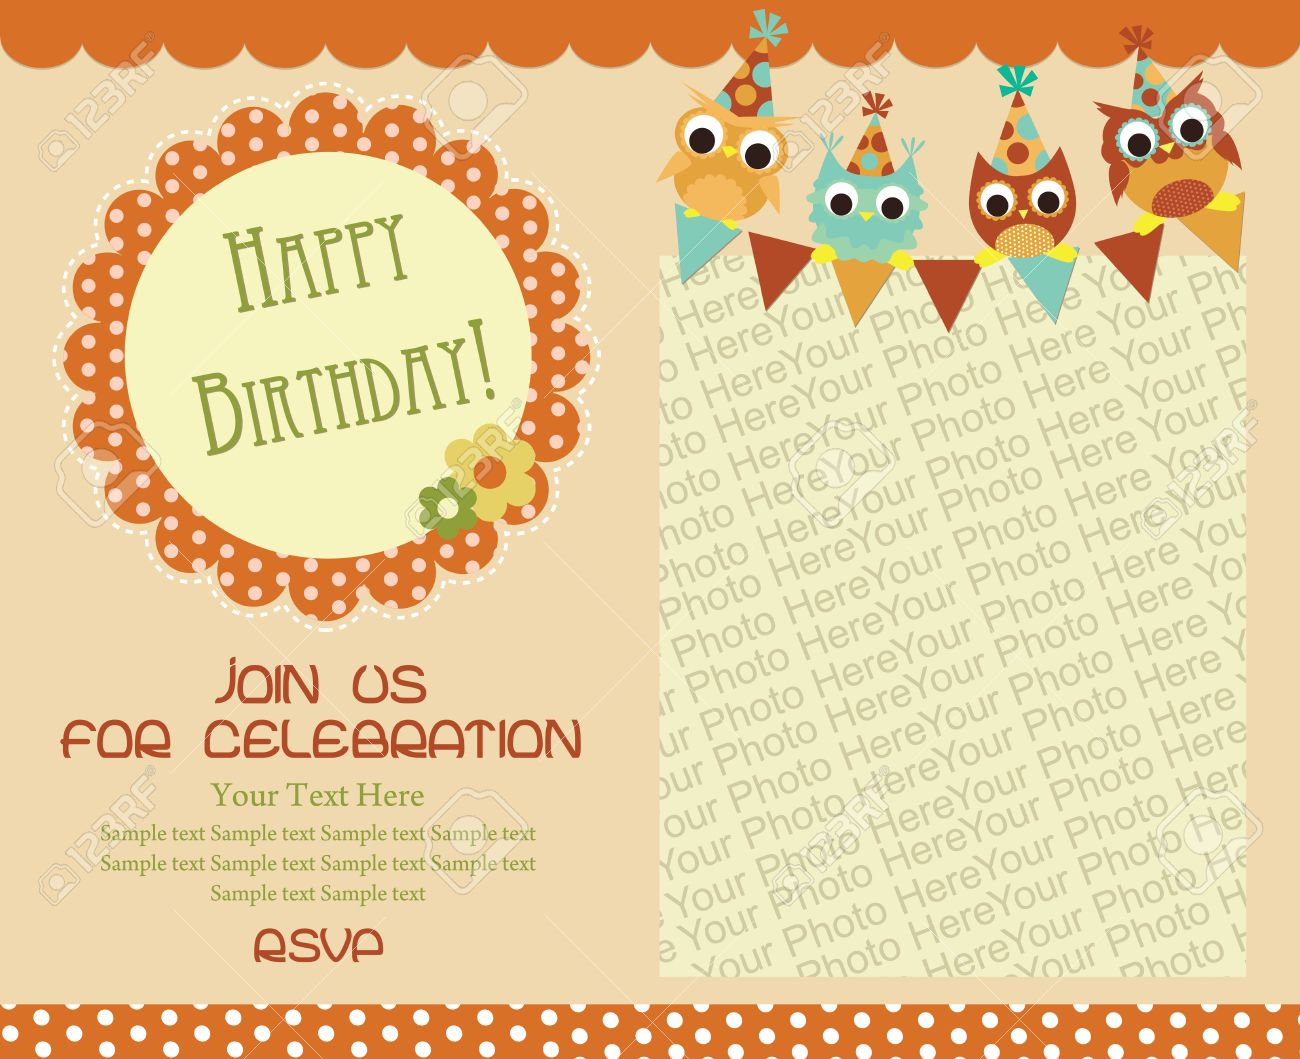 happy birthday invitation card design ; 26905973-happy-birthday-invitation-card-design-vector-illustration